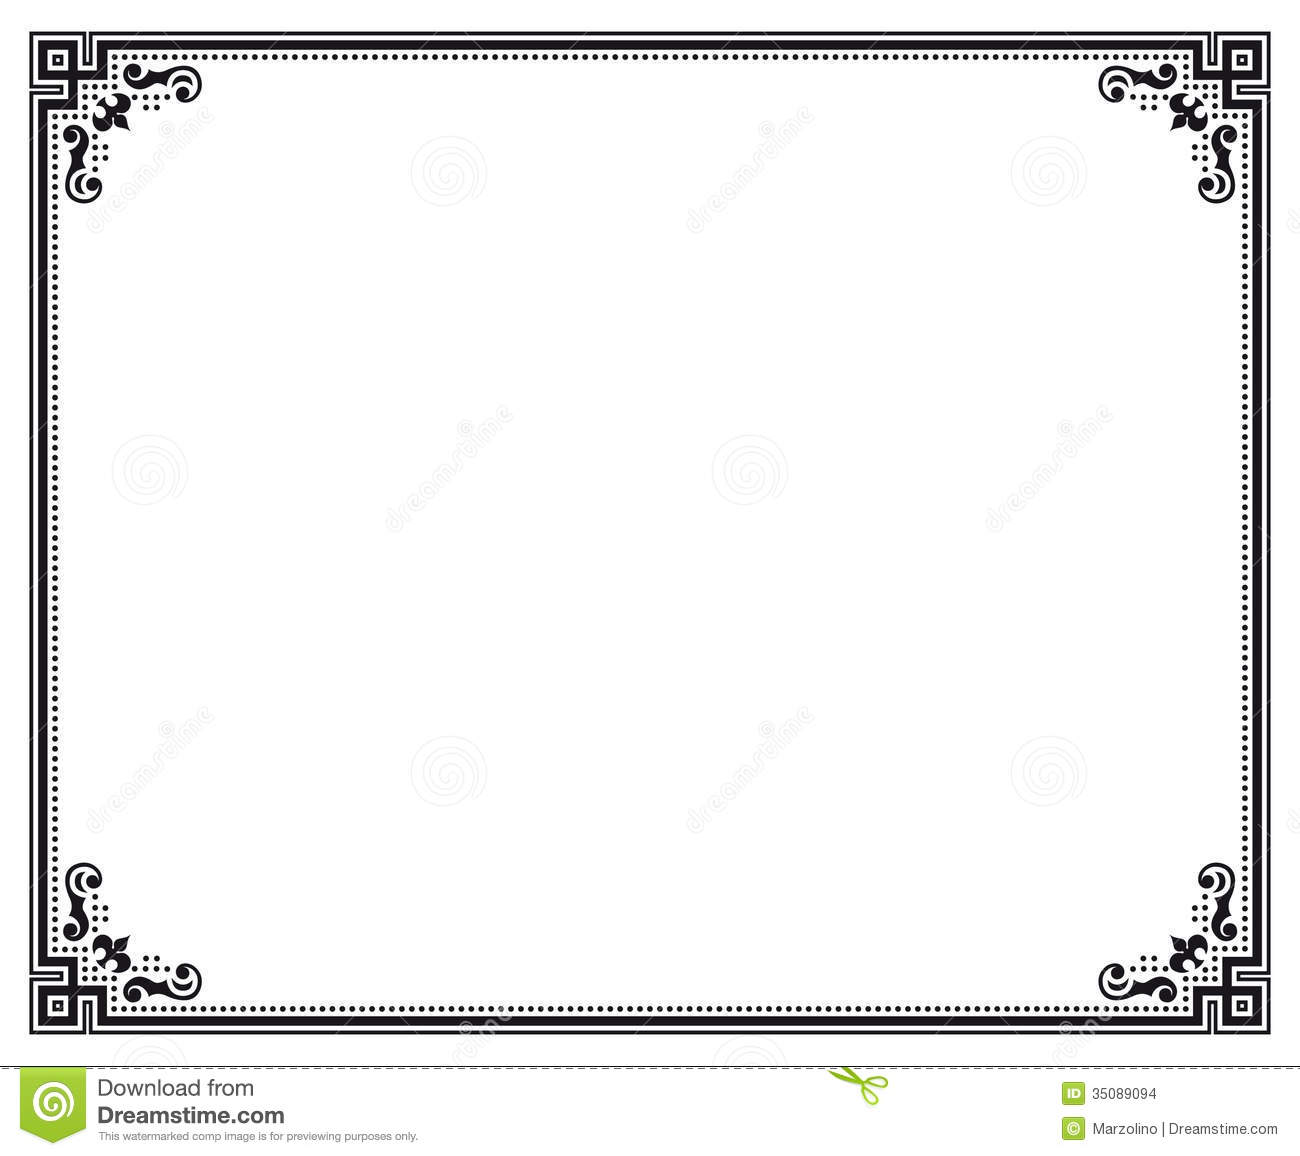 Black and White Certificate Borders